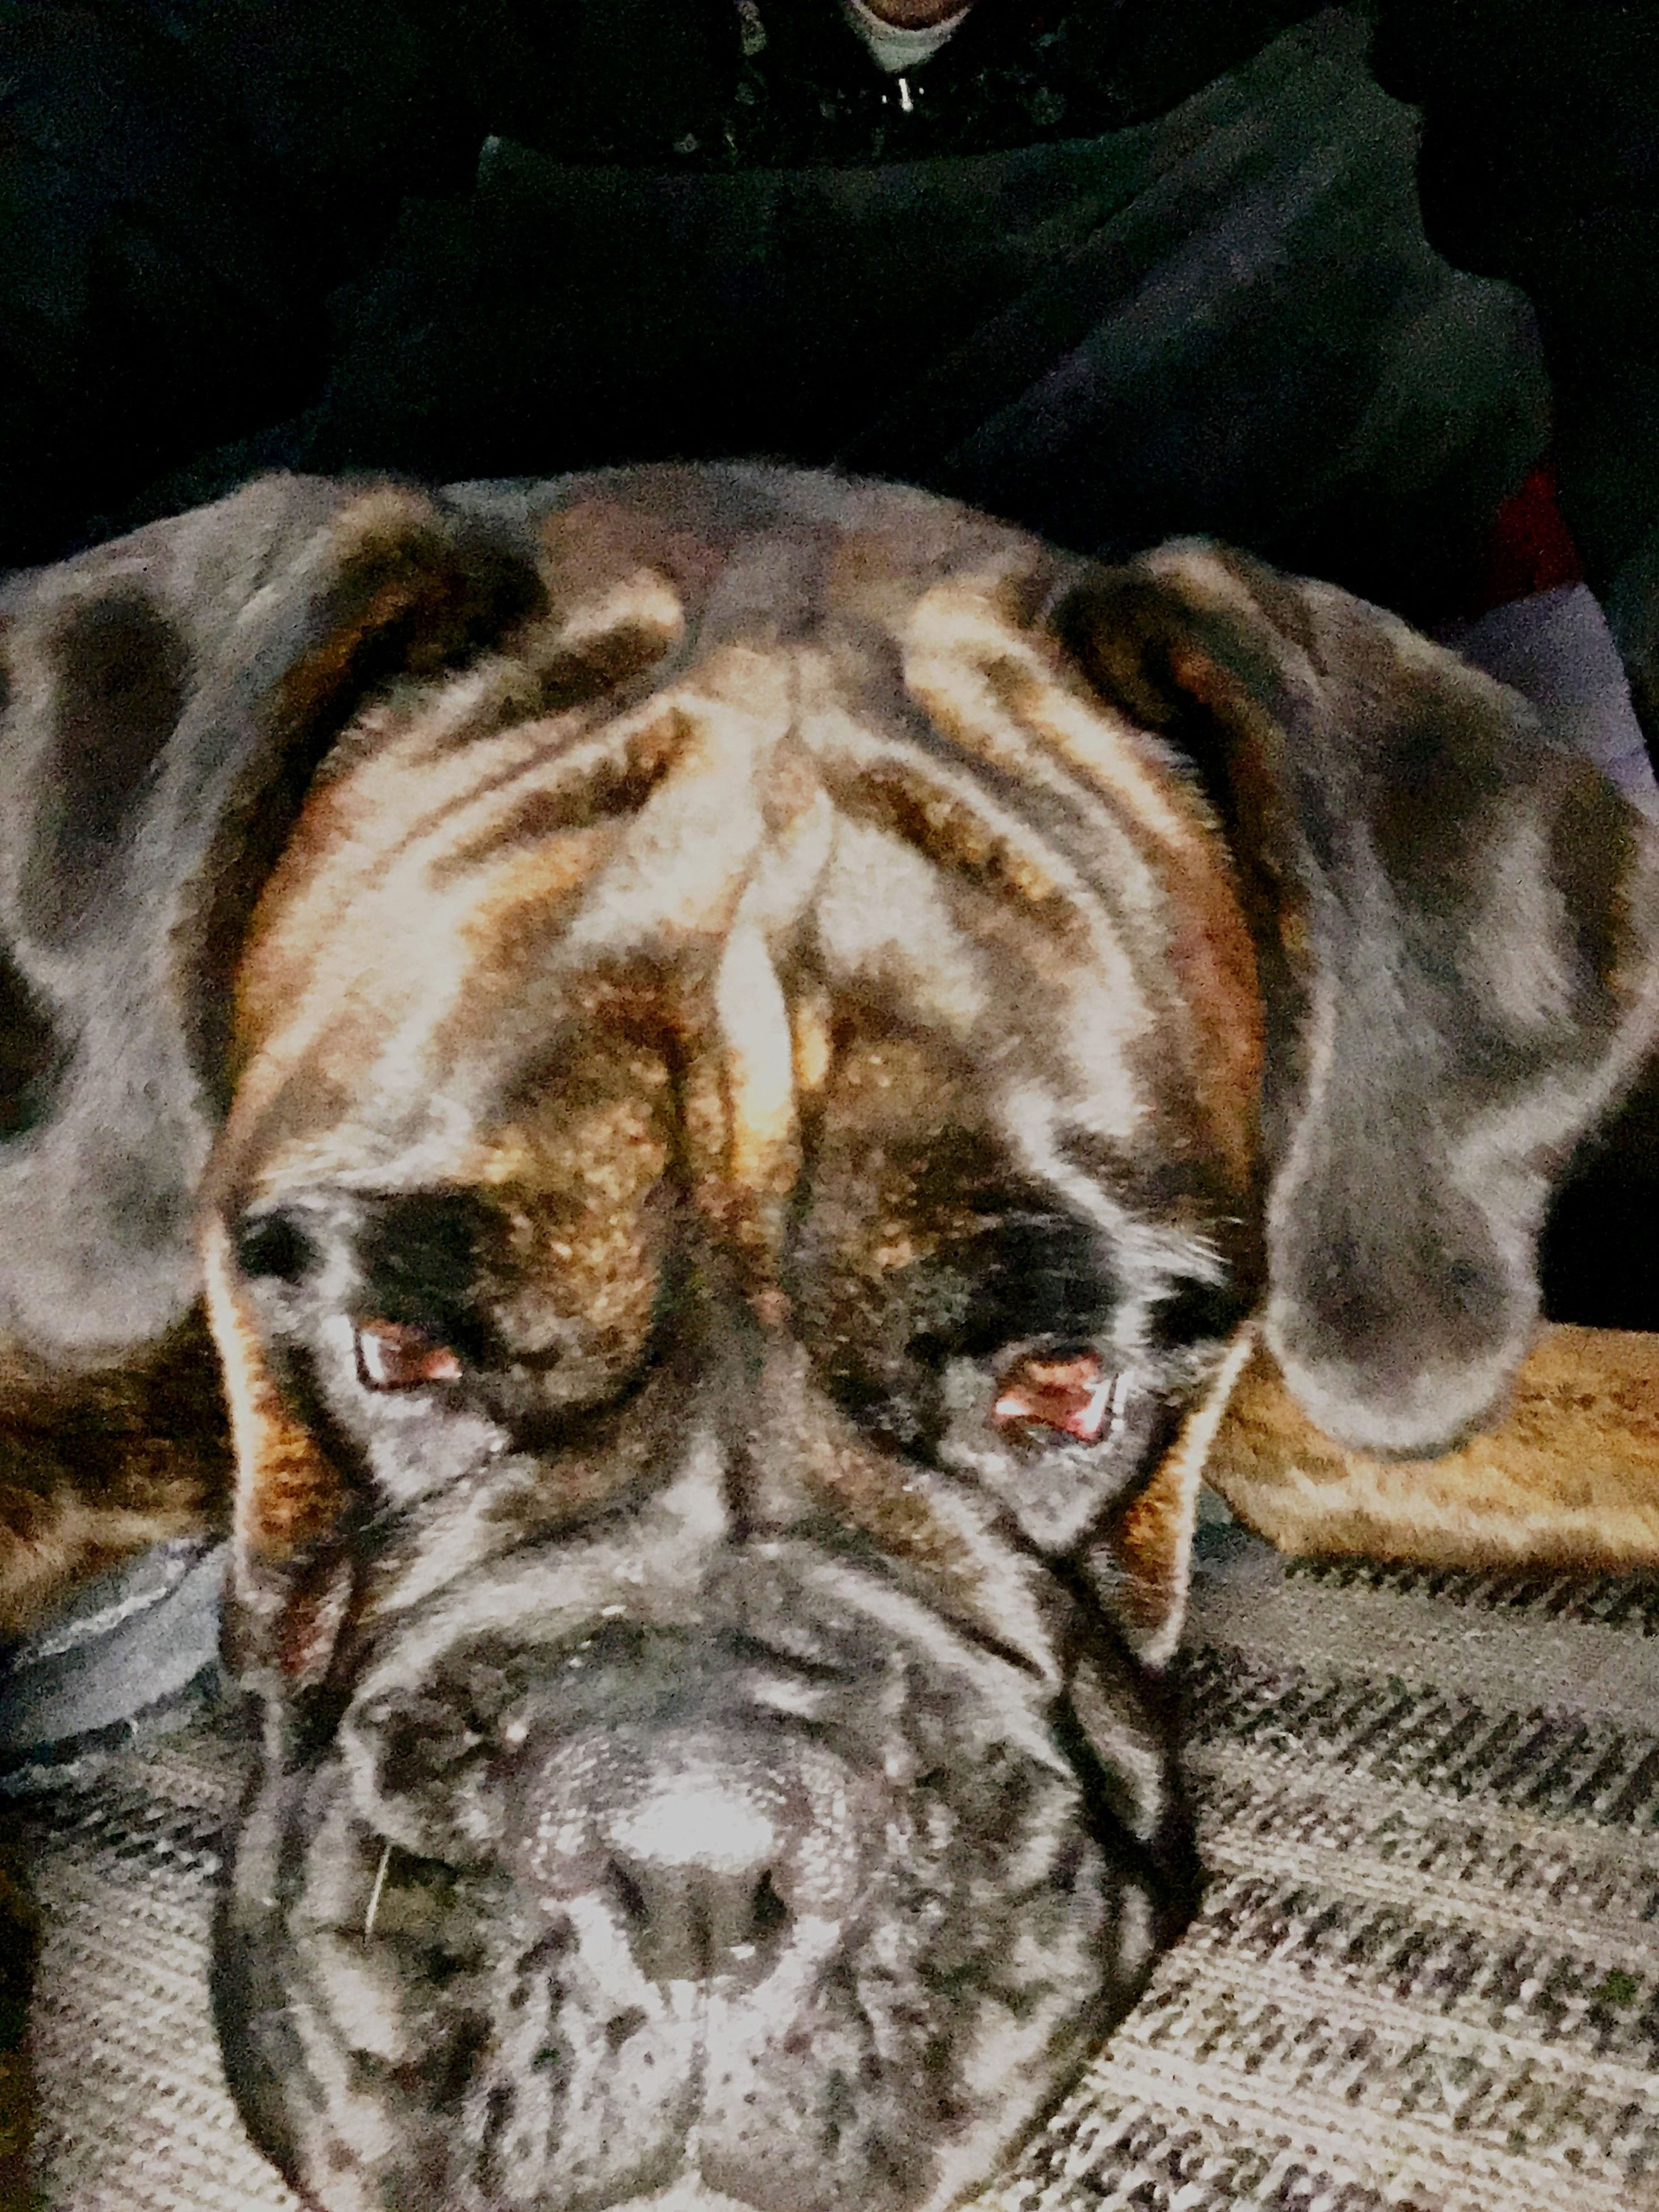 domestic animals, pets, animal themes, mammal, one animal, dog, relaxation, sleeping, indoors, resting, lying down, eyes closed, close-up, animal head, high angle view, comfortable, no people, black color, two animals, sofa